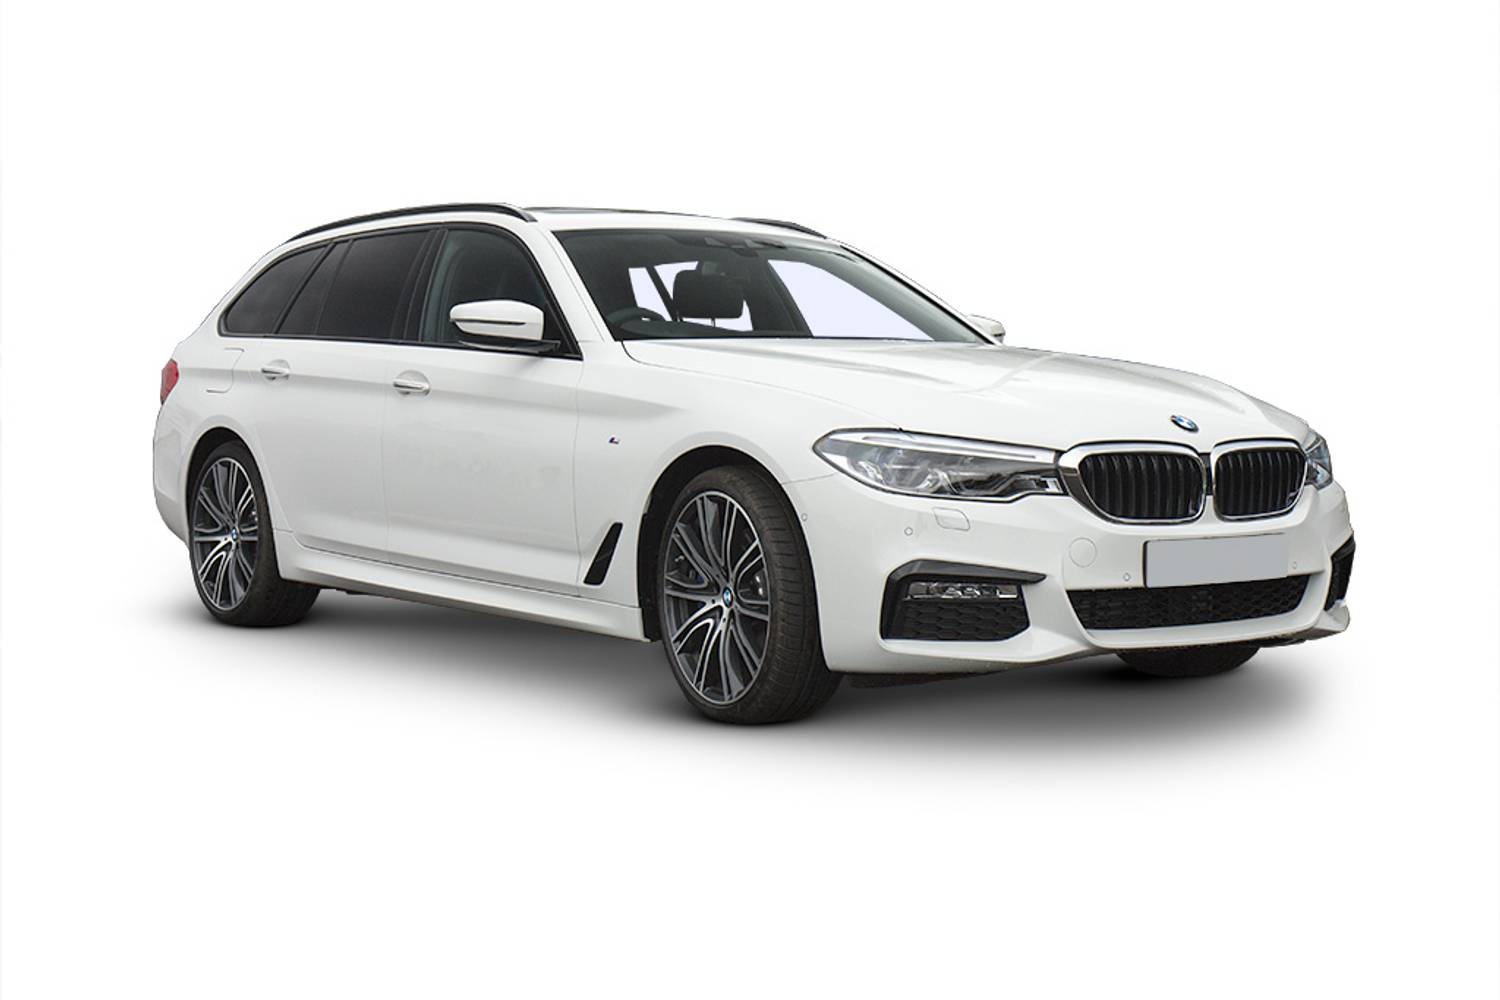 new bmw 5 series diesel touring 520d se 5 door auto 2017 for sale. Black Bedroom Furniture Sets. Home Design Ideas